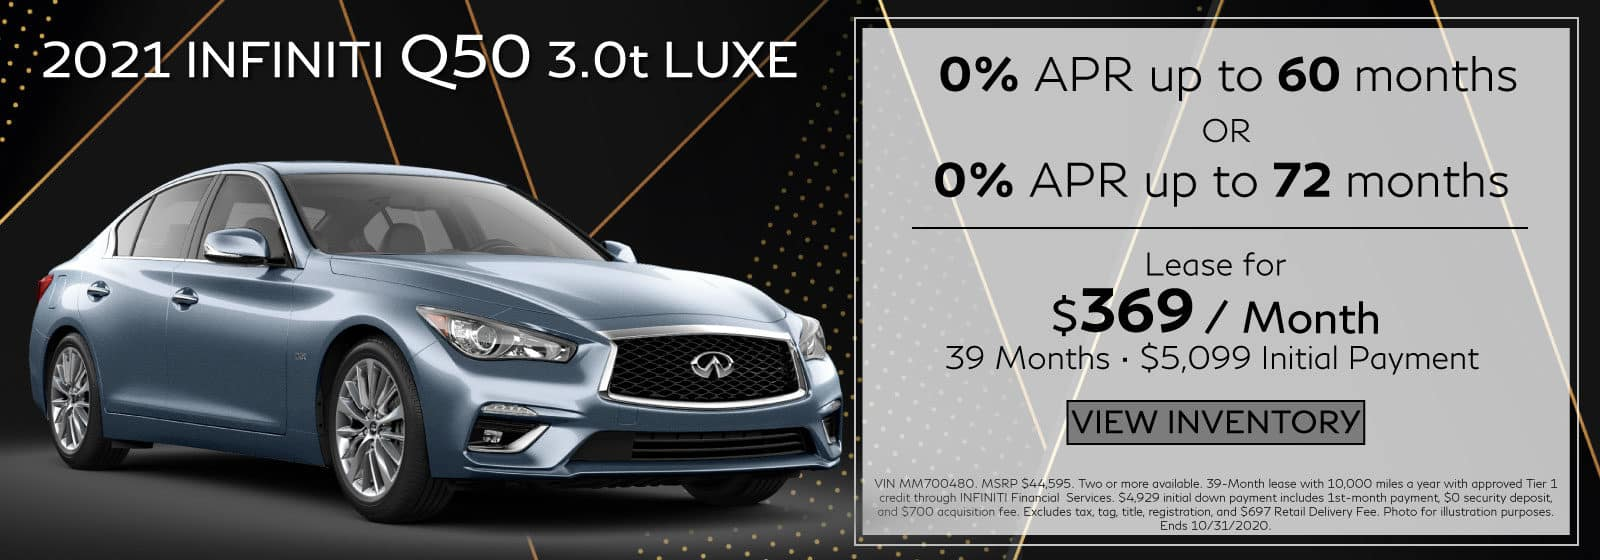 2020 Q50 3.0t LUXE. $369 a month for 39 months. $5,299 initial payment. 0% APR up to 60 Months OR 0% APR up to 72 months. Blue Q50 on black abstract background.